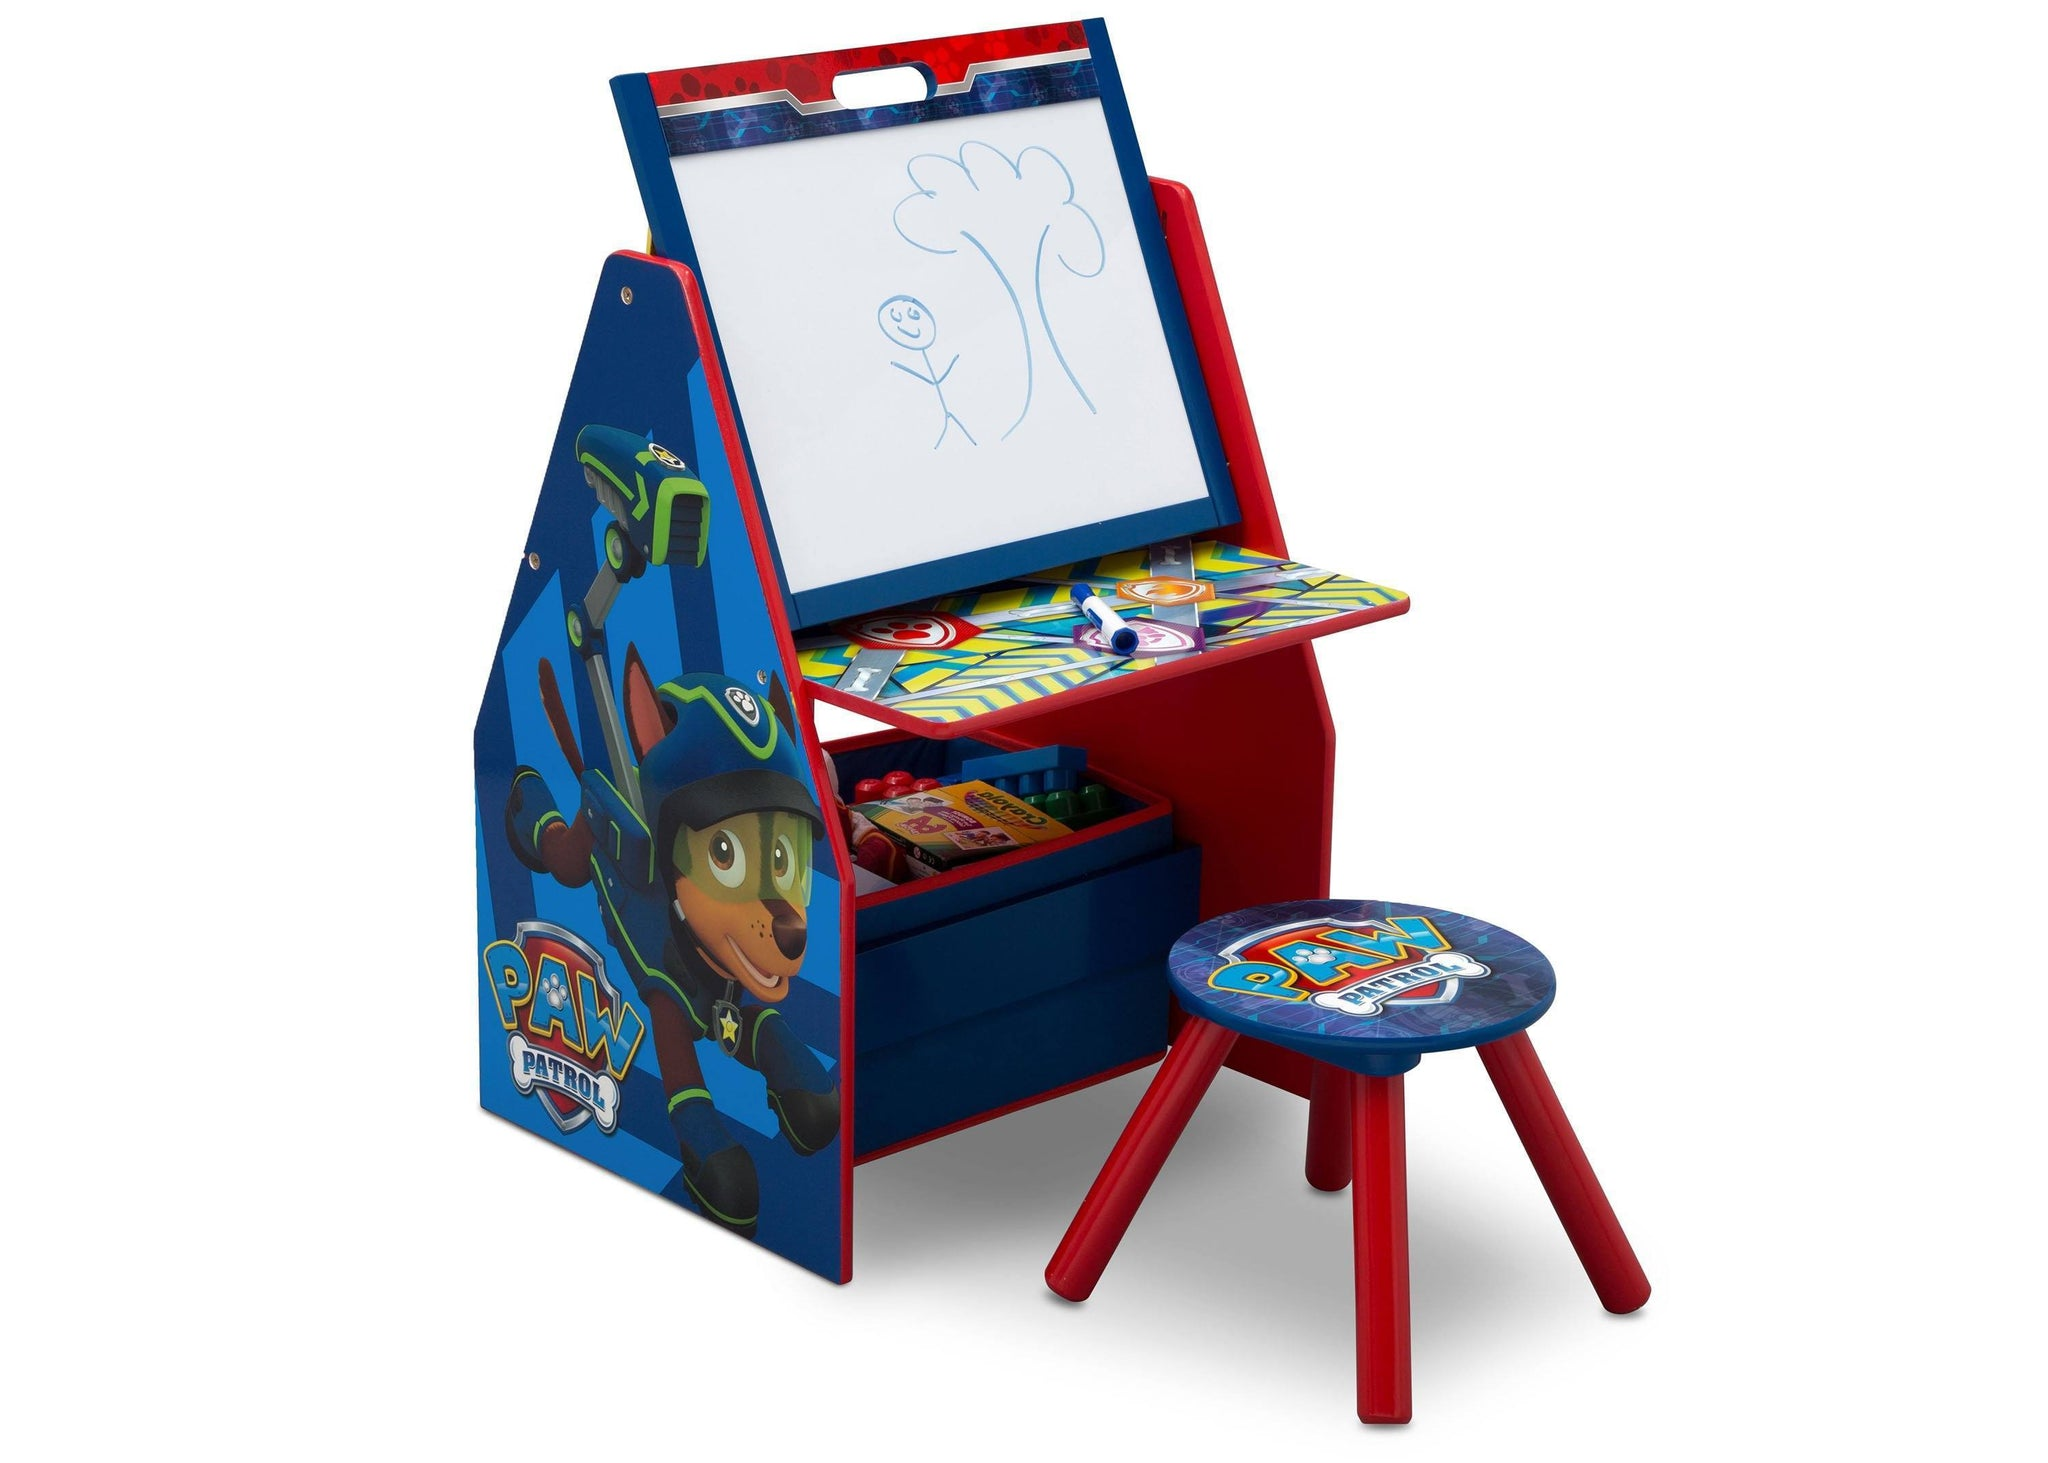 Delta Children PAW Patrol Activity Center - Easel Desk with Stool & Toy Organizer Right View Easel Desk a1a